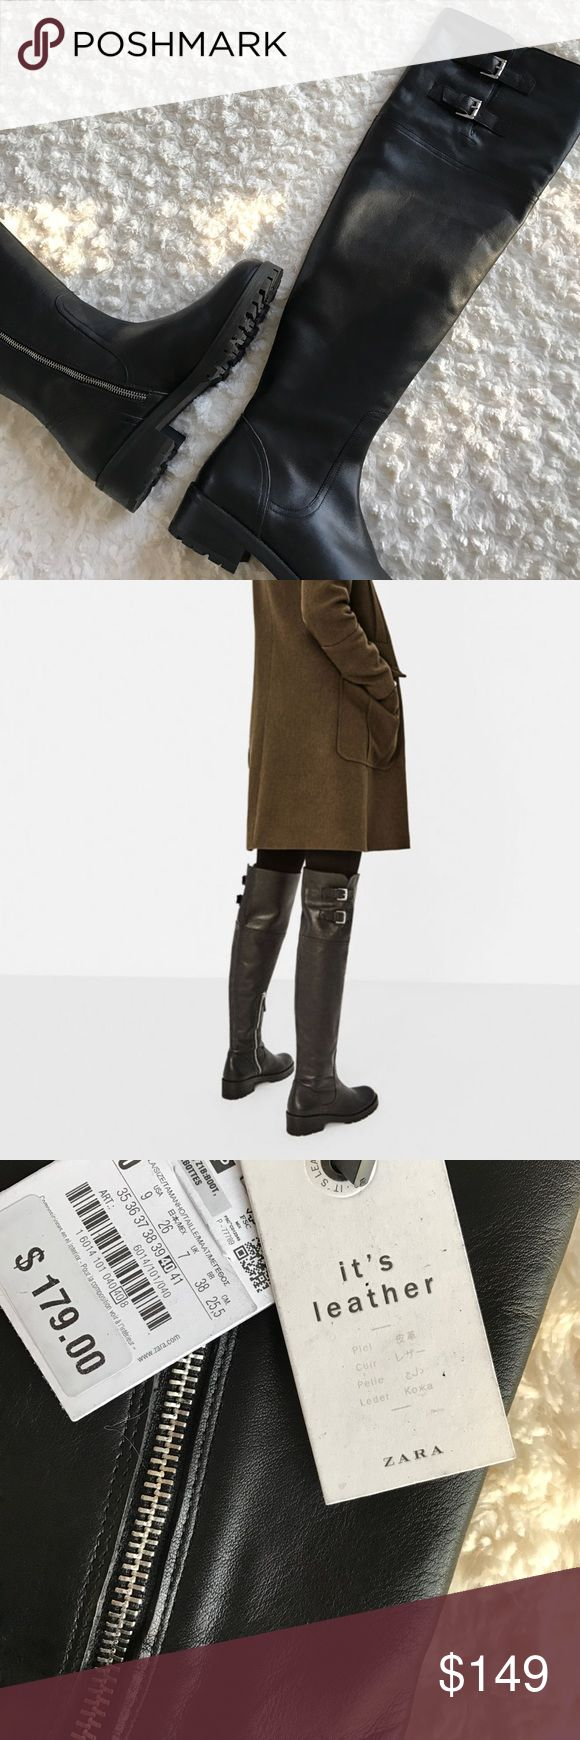 "ZARA over-the-knee 100% Leather Boots No trades. ZARA Black flat leather boots. Buckles on the side.  Side zip closure. Track sole. Rounded toe.  Sole height of 5.0 cm. / 1.9"". Ships in original box. Zara Shoes Over the Knee Boots"